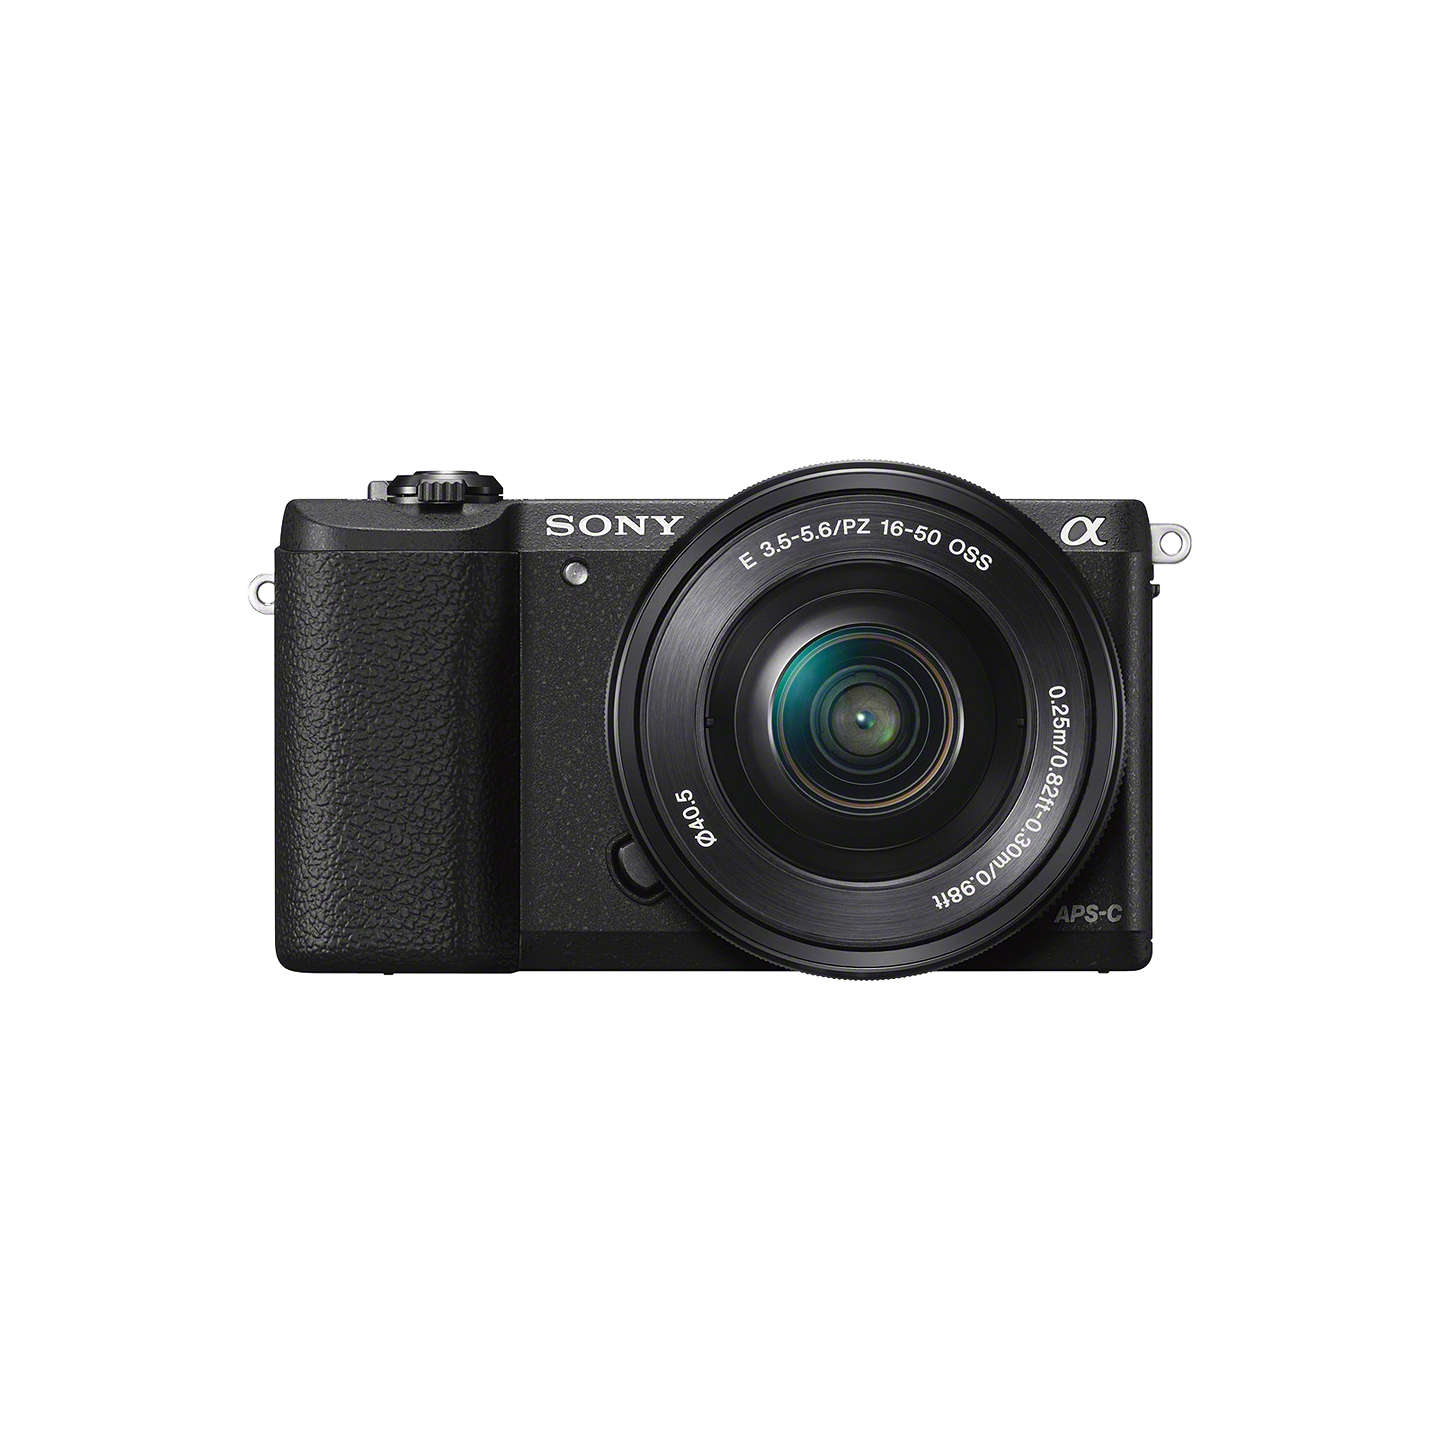 BuySony A5100 Compact System Camera With 16 50mm OSS Lens HD 1080p 243